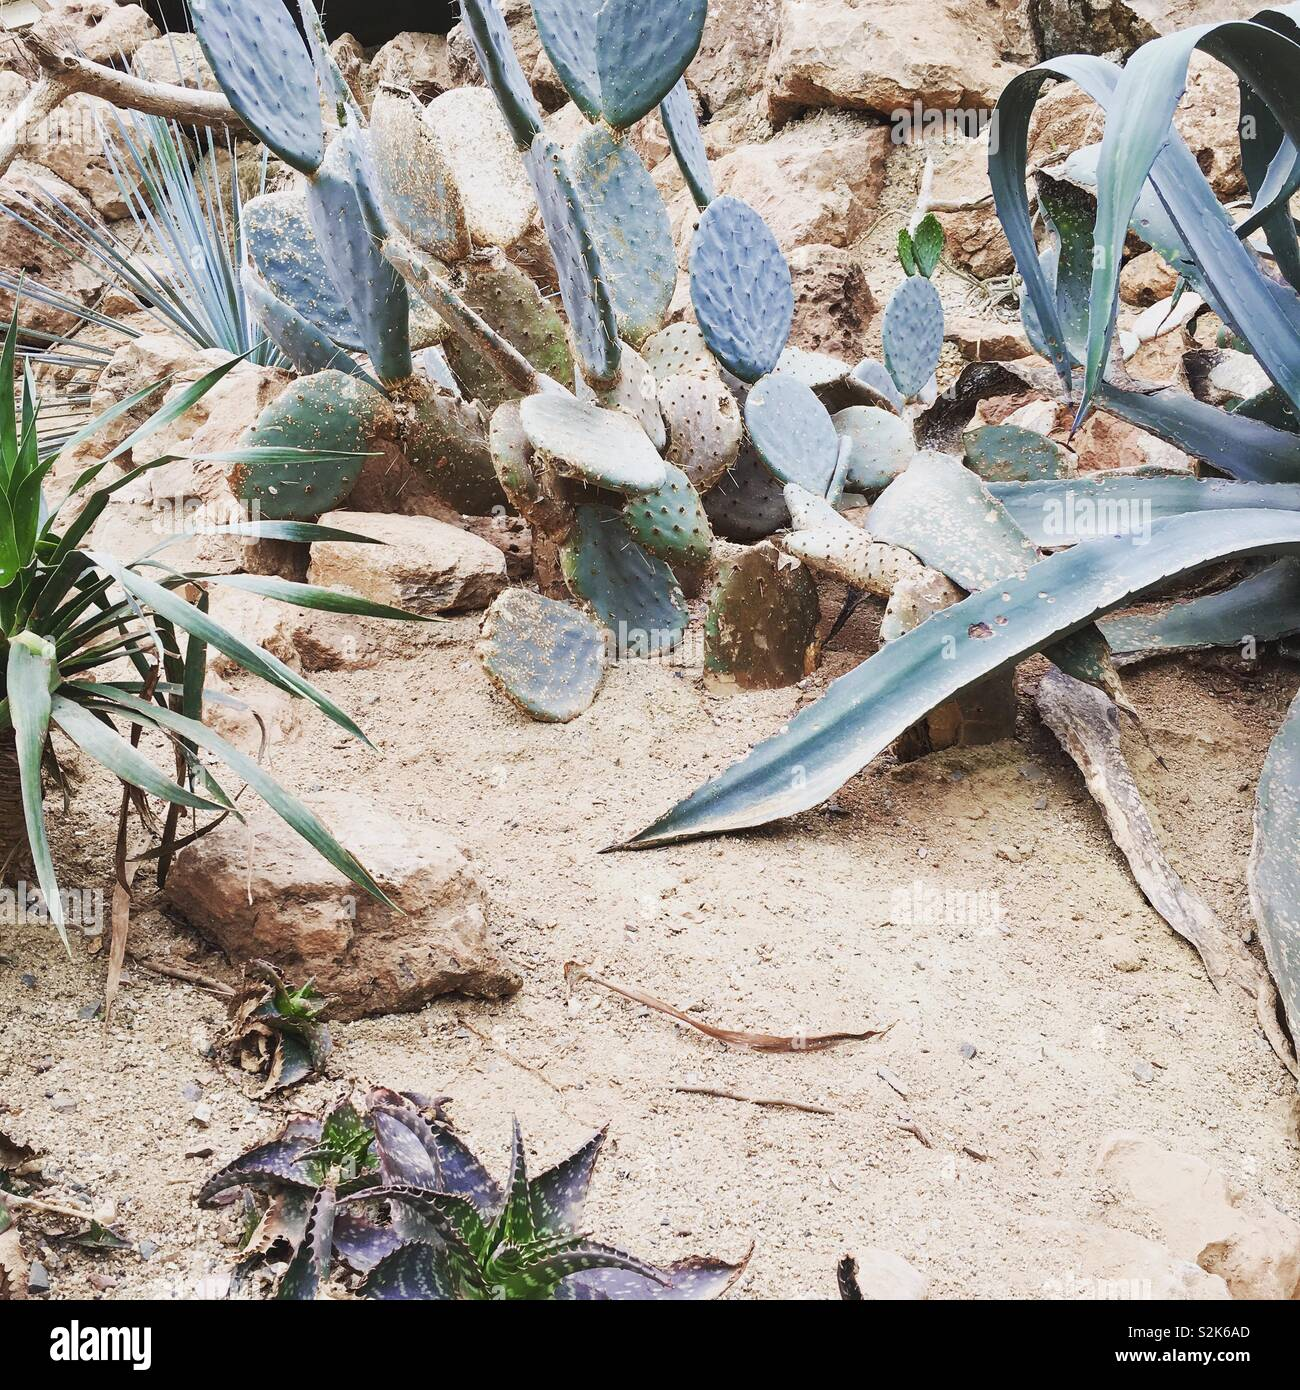 Cacti and succulents in a desert environment - Stock Image